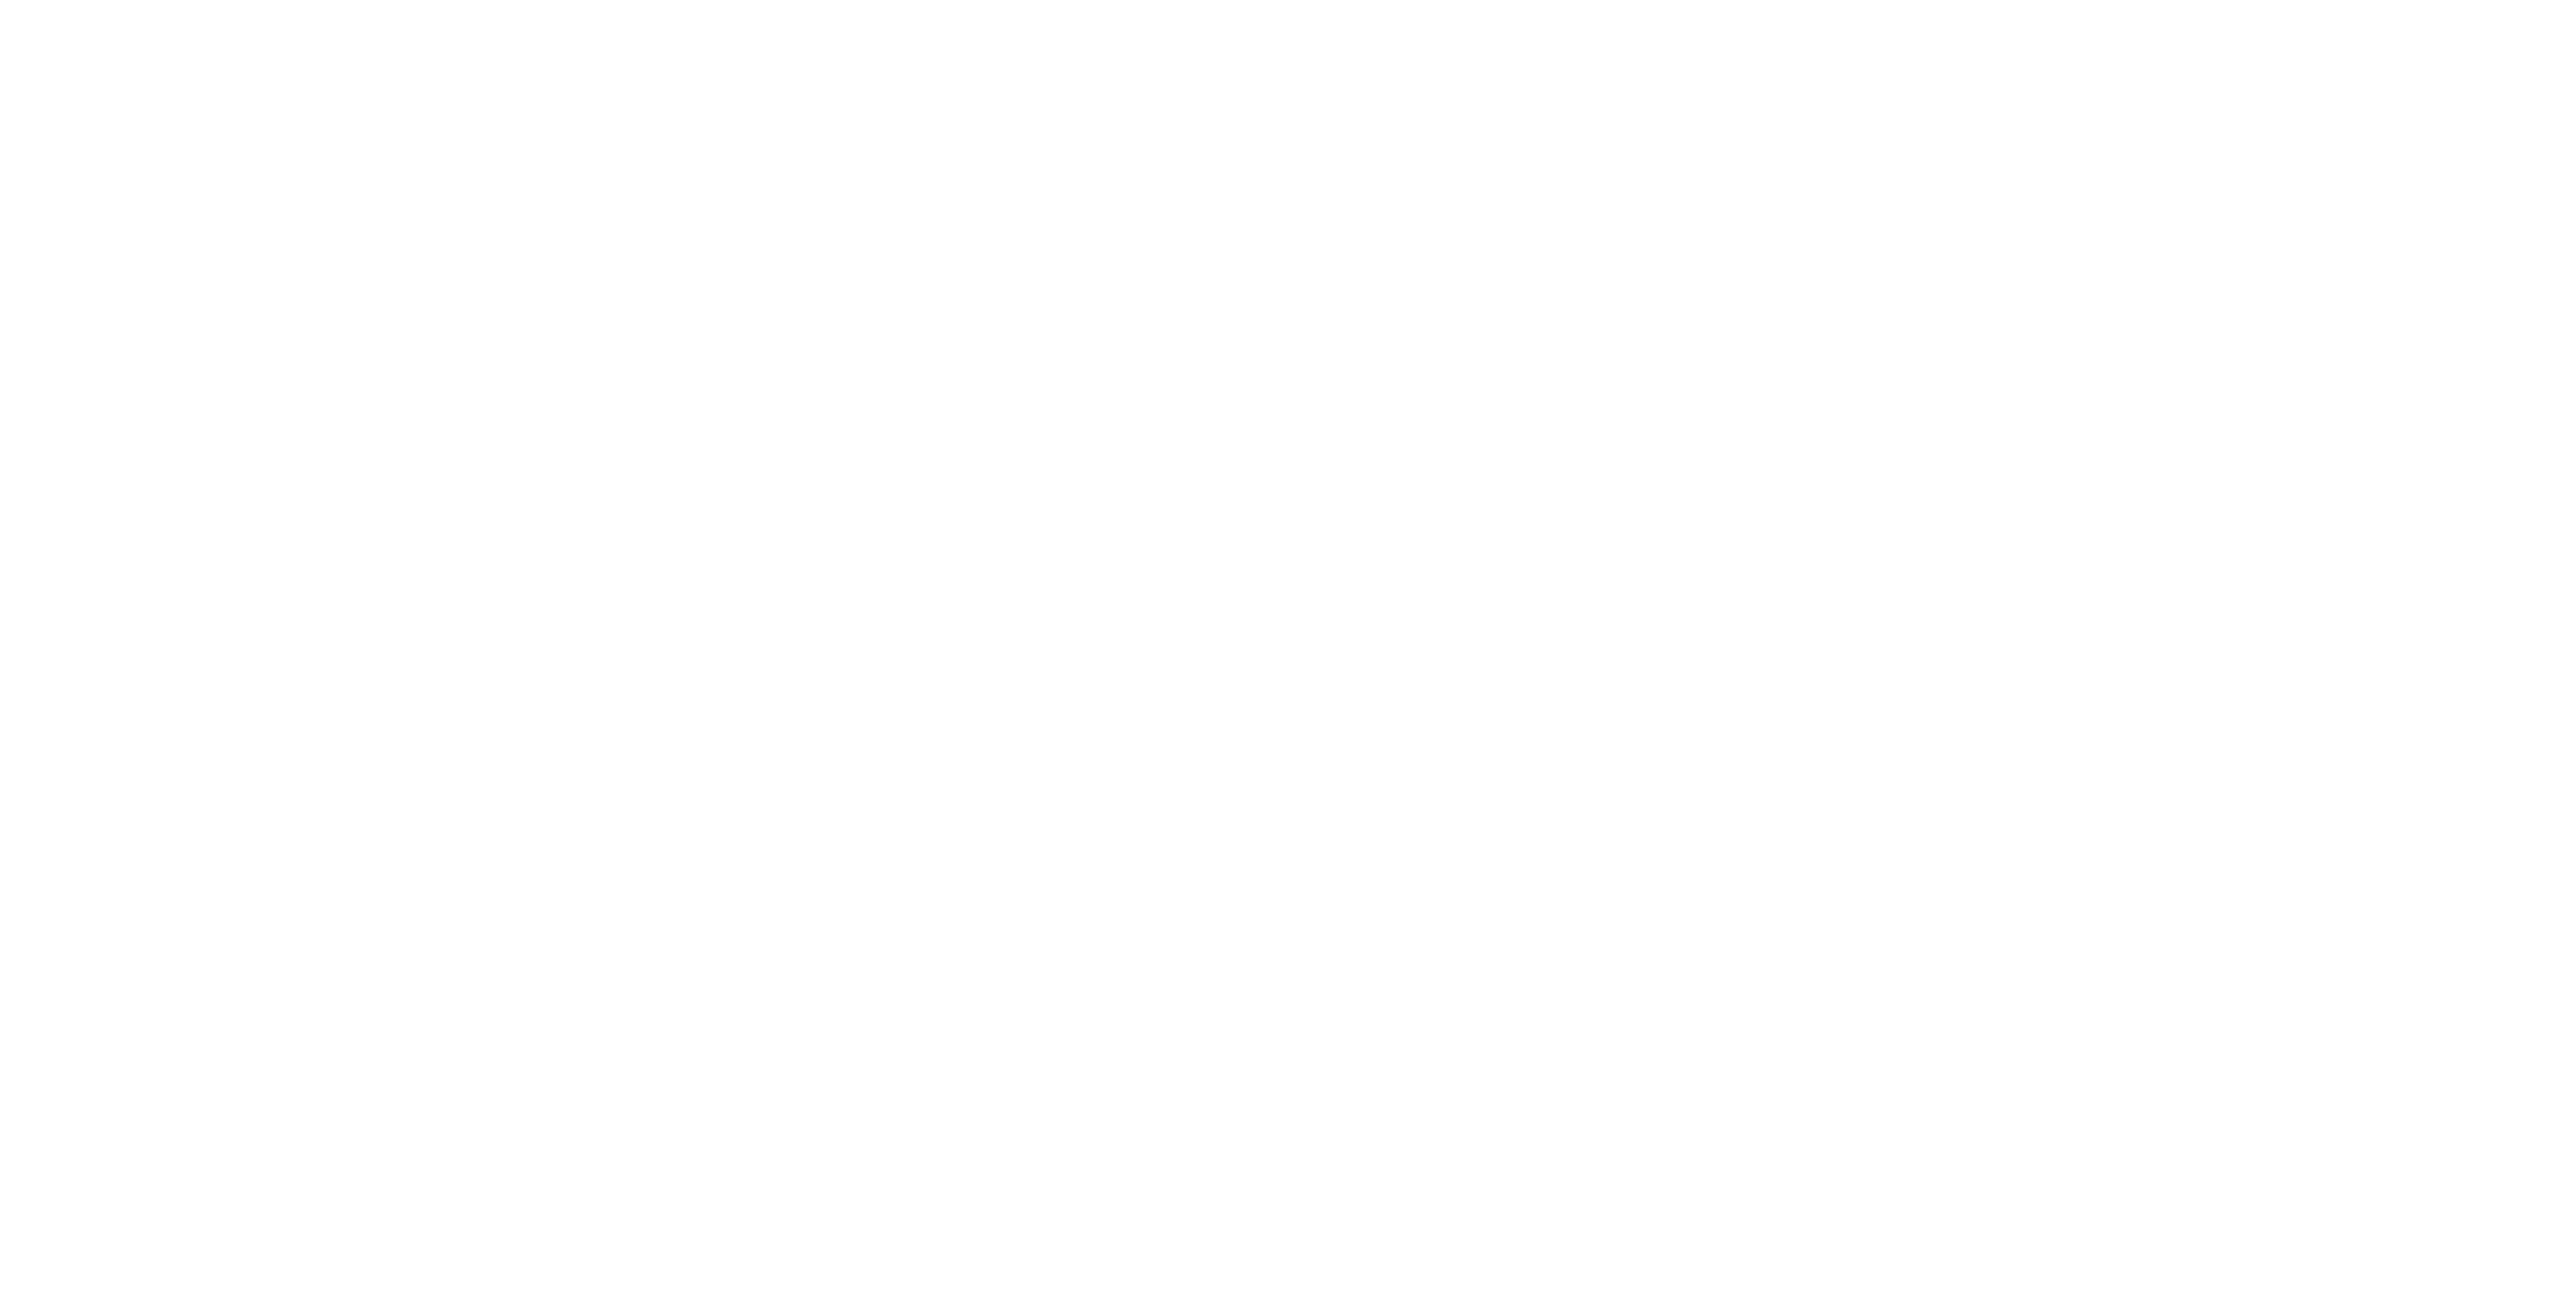 Marc Böttler Direction Animation Design